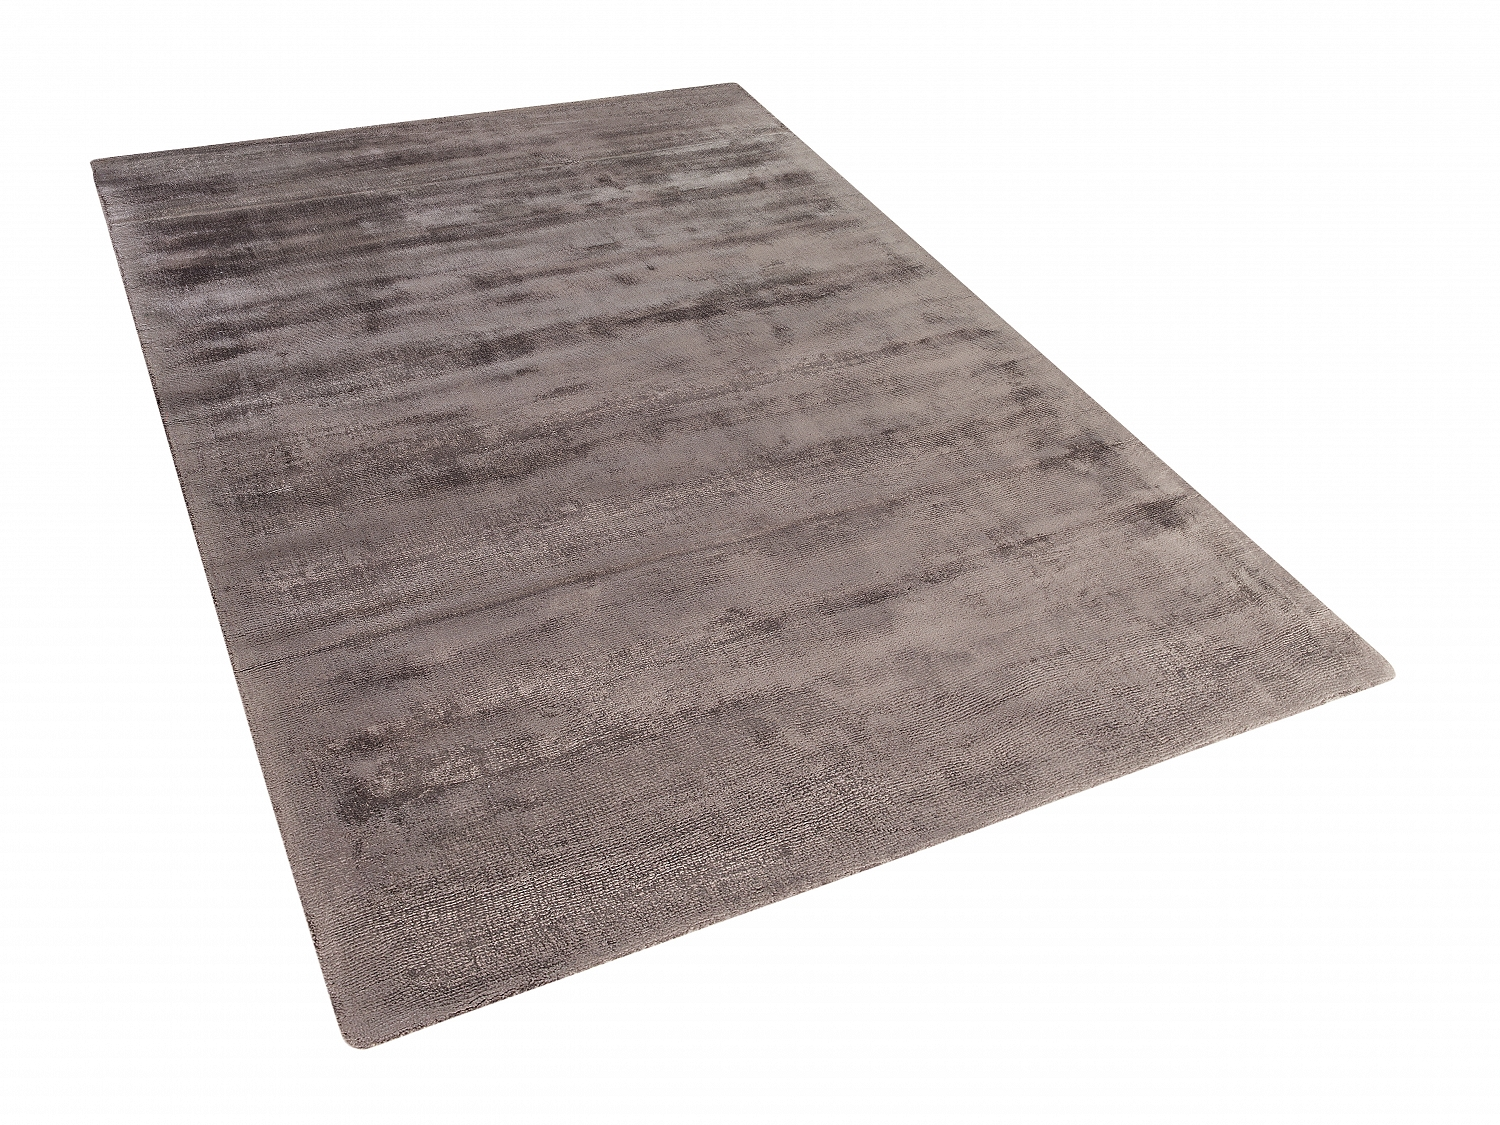 tapis design tapis en 80x150 cm poils ras moelleux gris fonc ebay. Black Bedroom Furniture Sets. Home Design Ideas